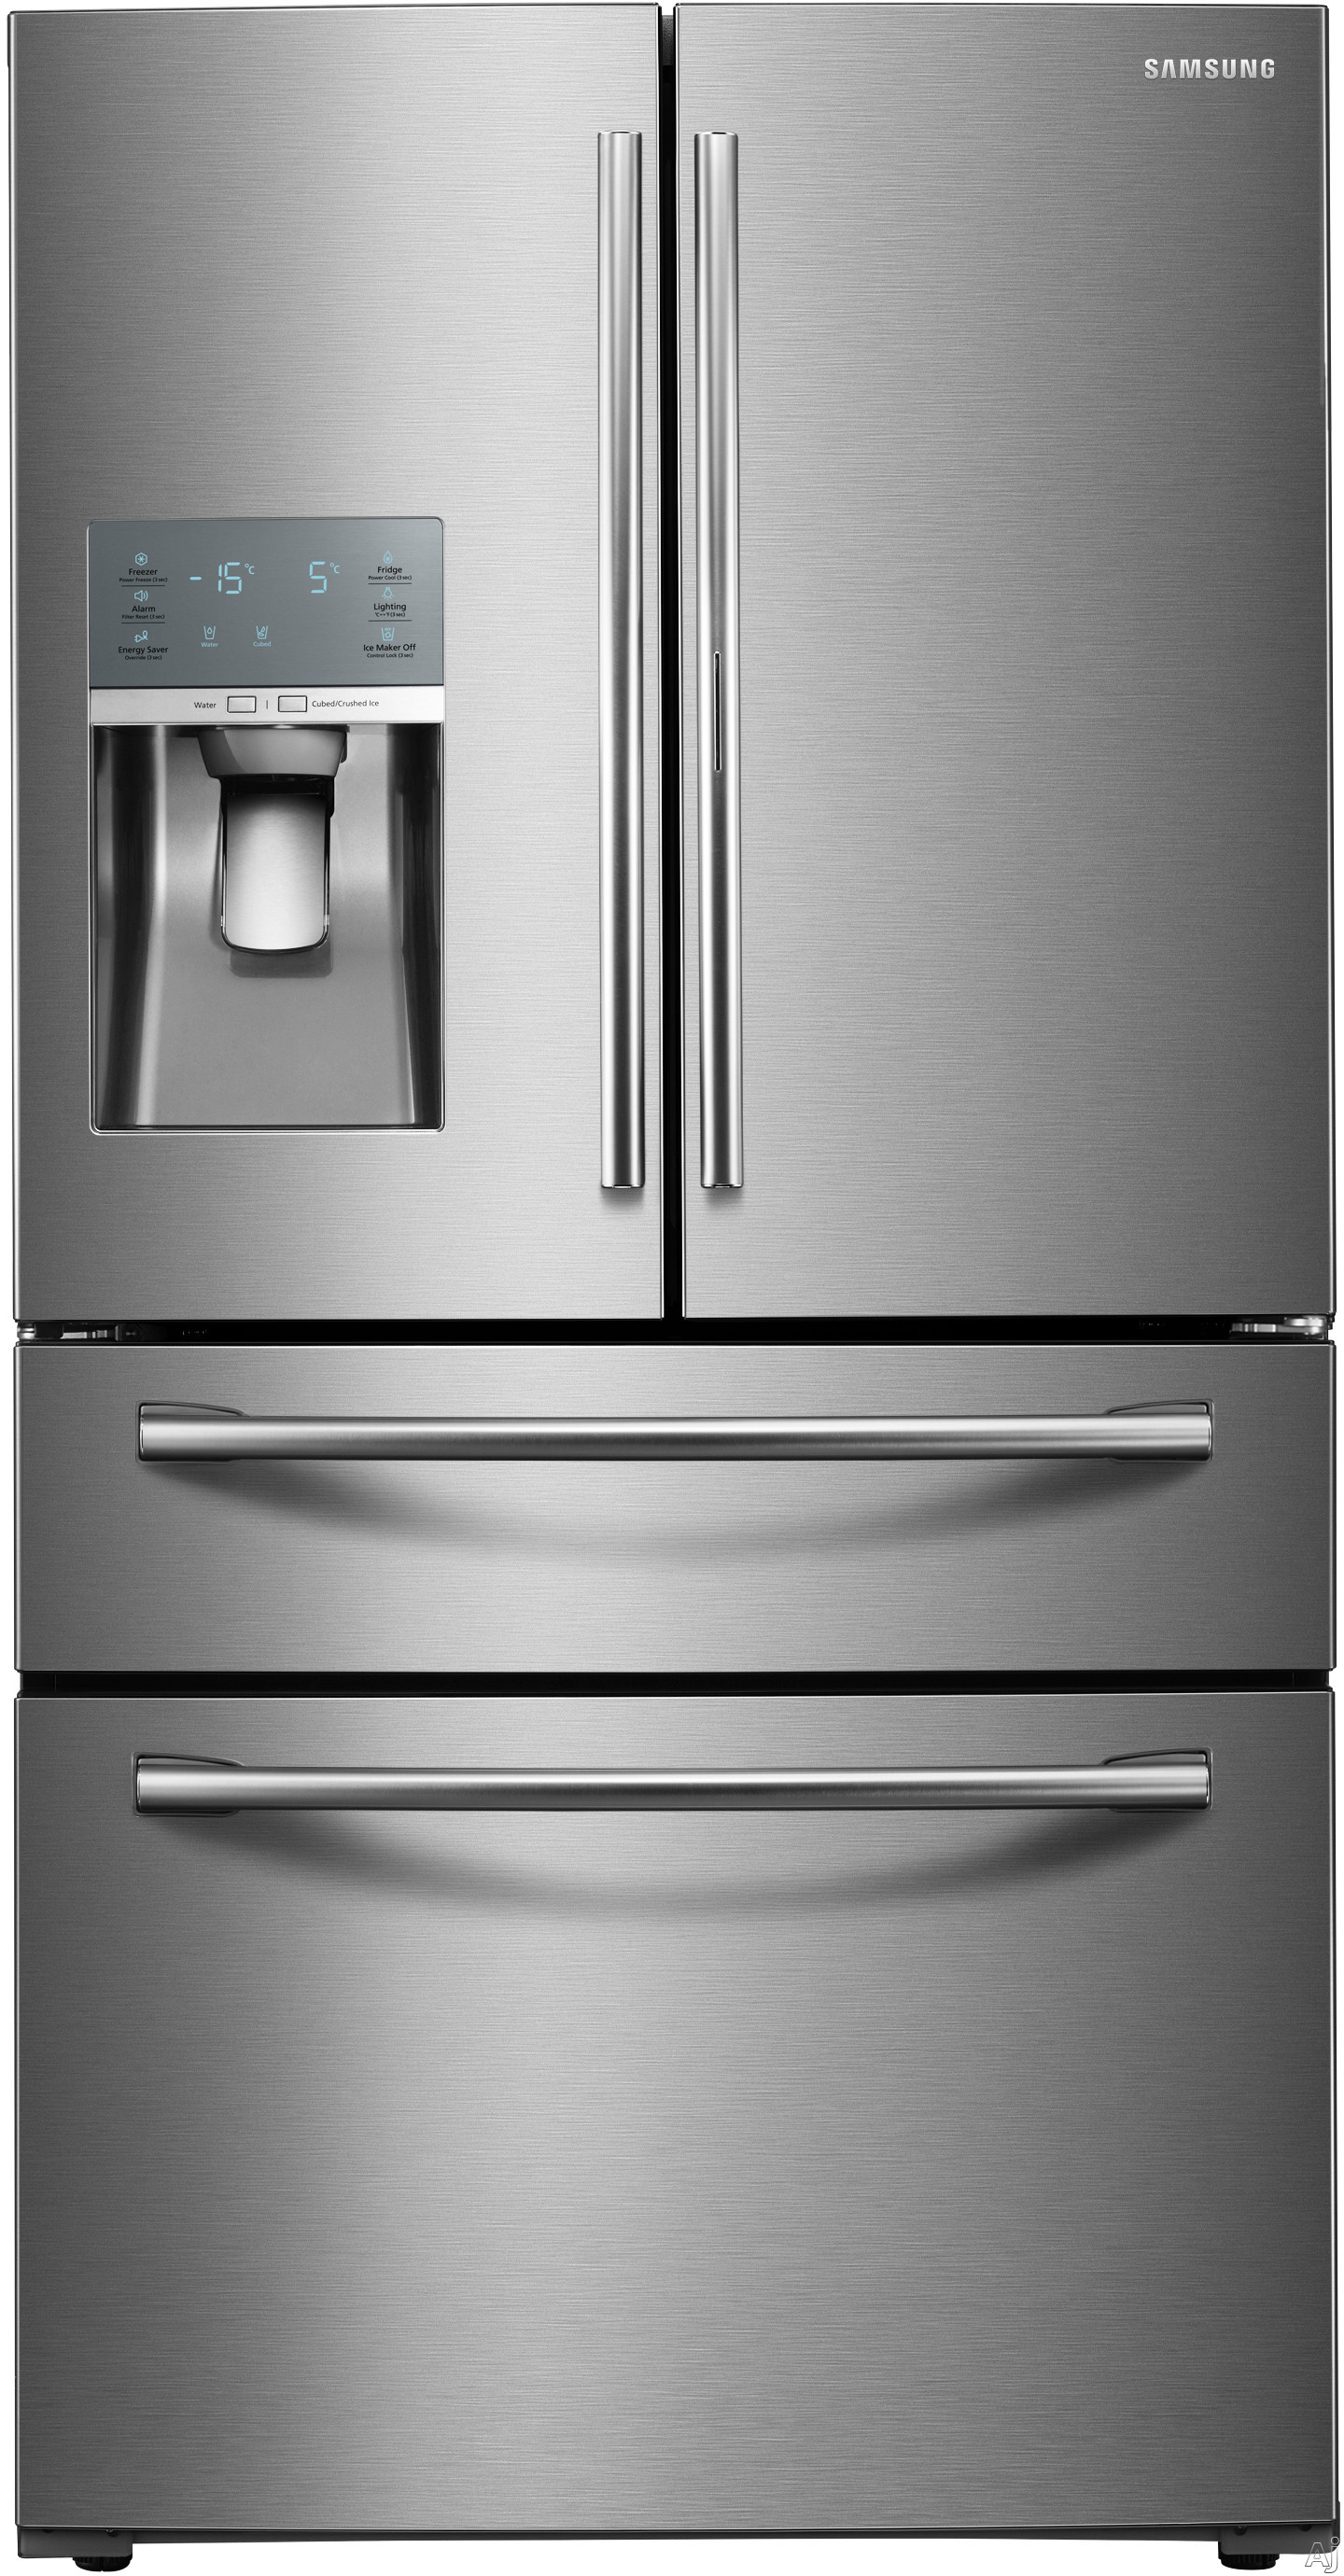 Samsung RF28JBEDBSR 36 Inch 4-Door French Door Refrigerator with FlexZone Drawer, Tempered Glass Spill-Proof Shelves, Twin Cooling Plus, Gallon Door Storage, Food ShowCase Fridge Door, LED Lighting, Filtered Water and Ice Dispenser and Energy Star Qualified: Stainless Steel